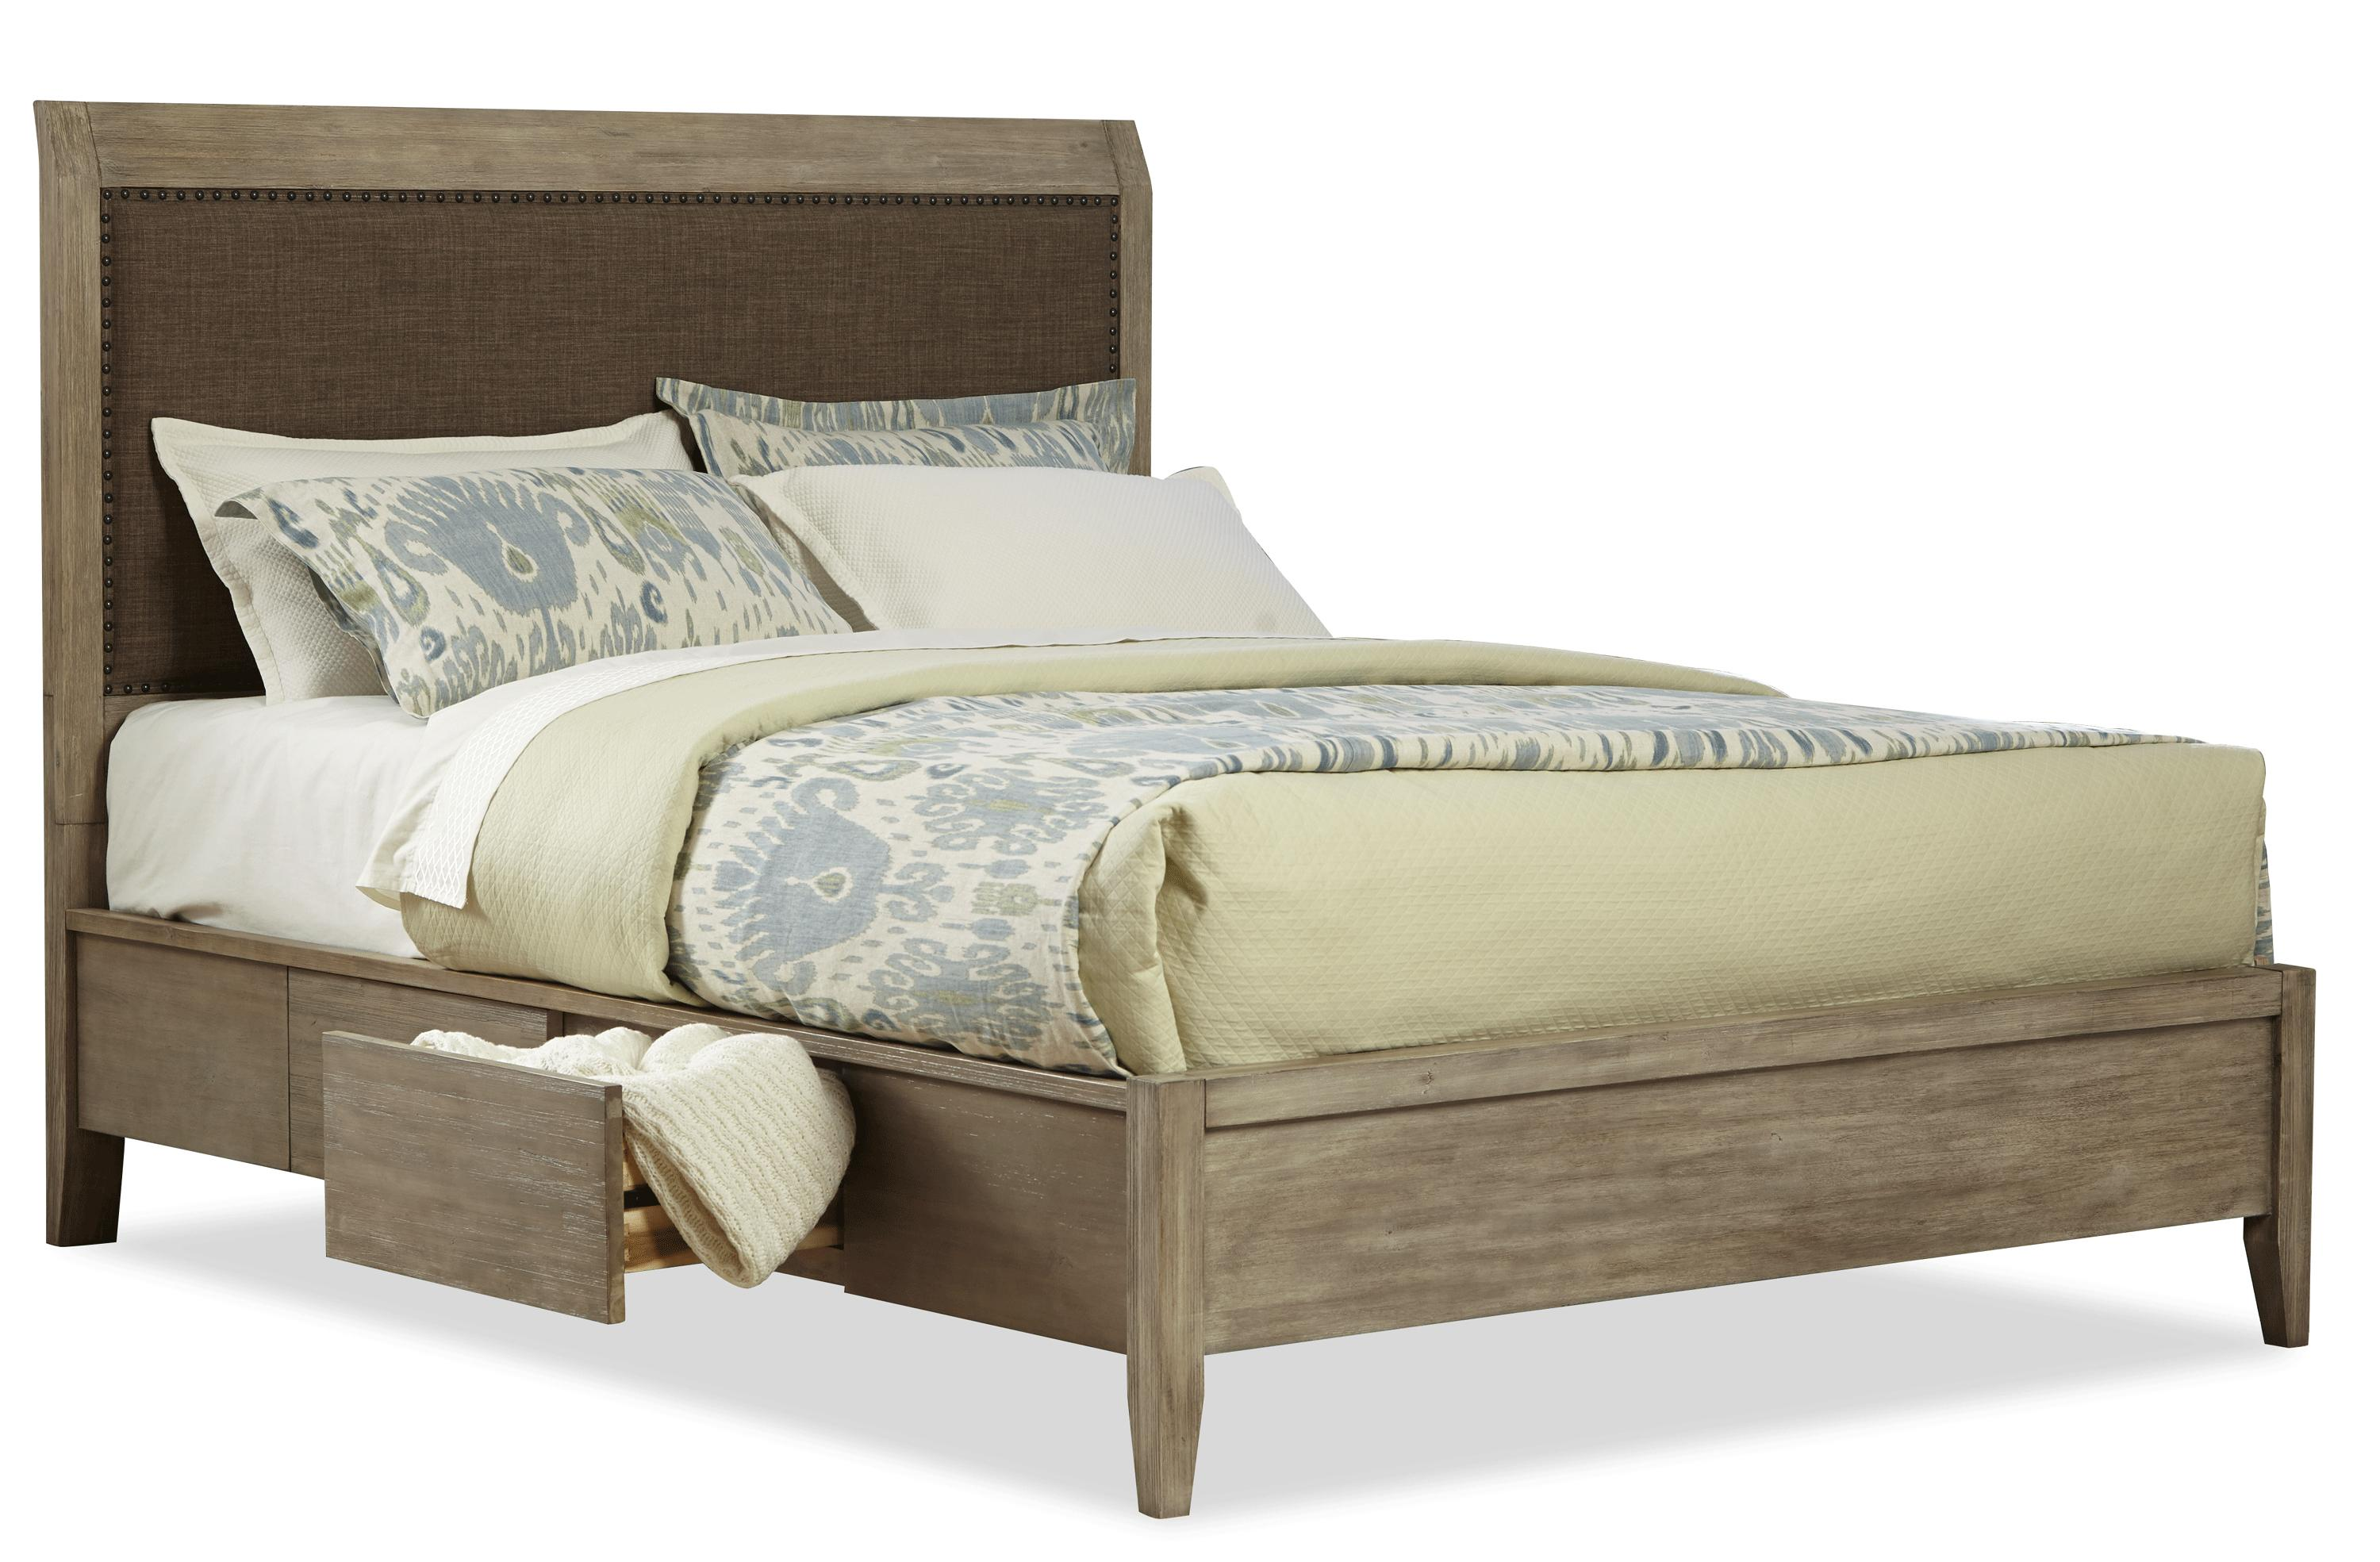 Cresent Fine Furniture Corliss Landing Queen Upholstered Storage Bed - Item Number: 5633QB+32QRL+32QRS+32QSL